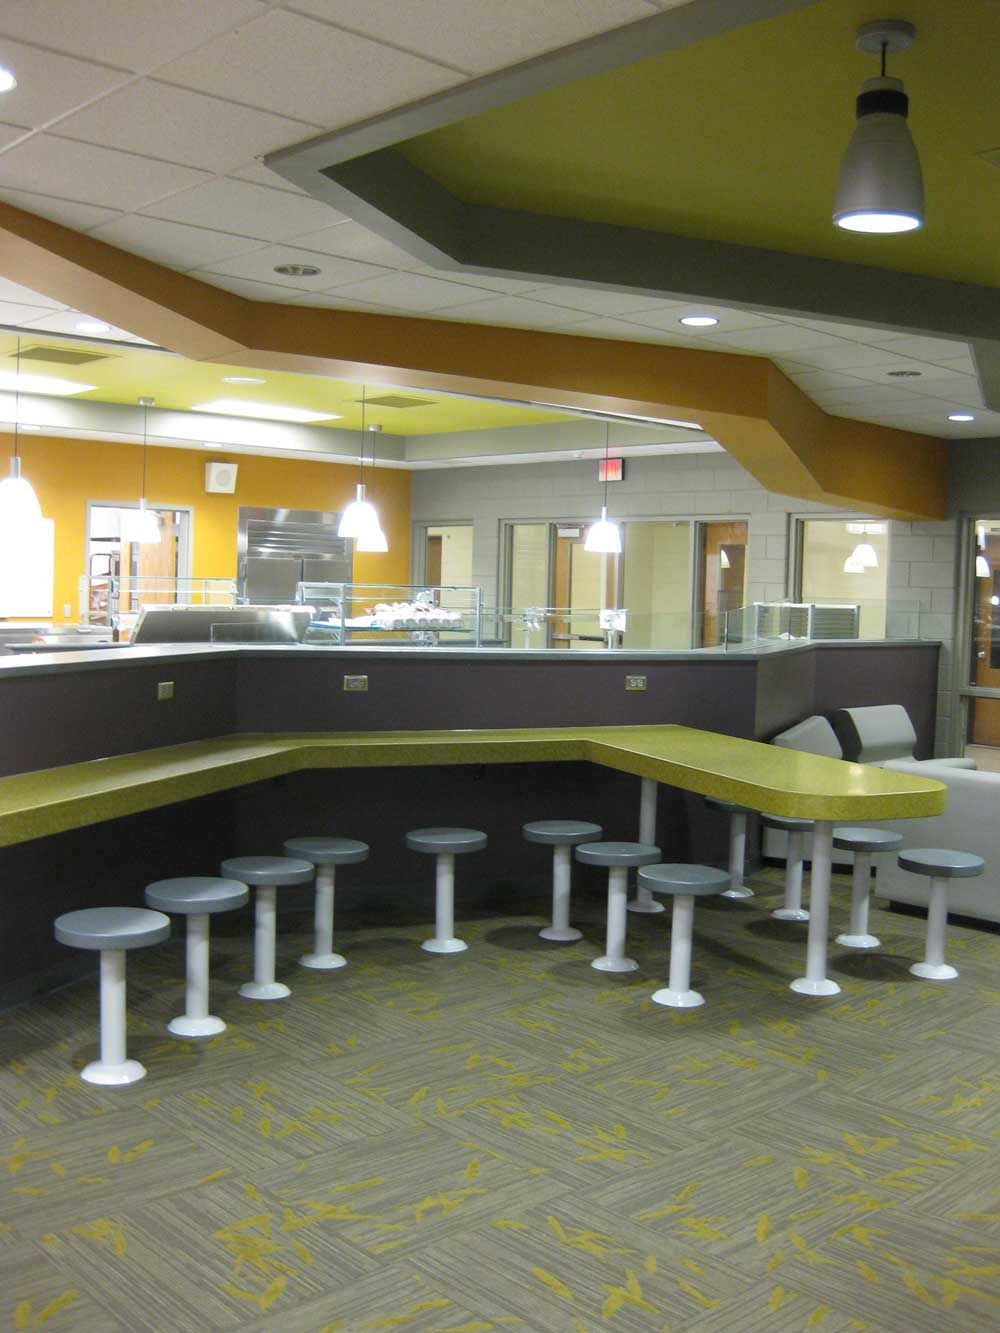 Student cafeteria amdg architects grand rapids mi for Architects grand rapids mi